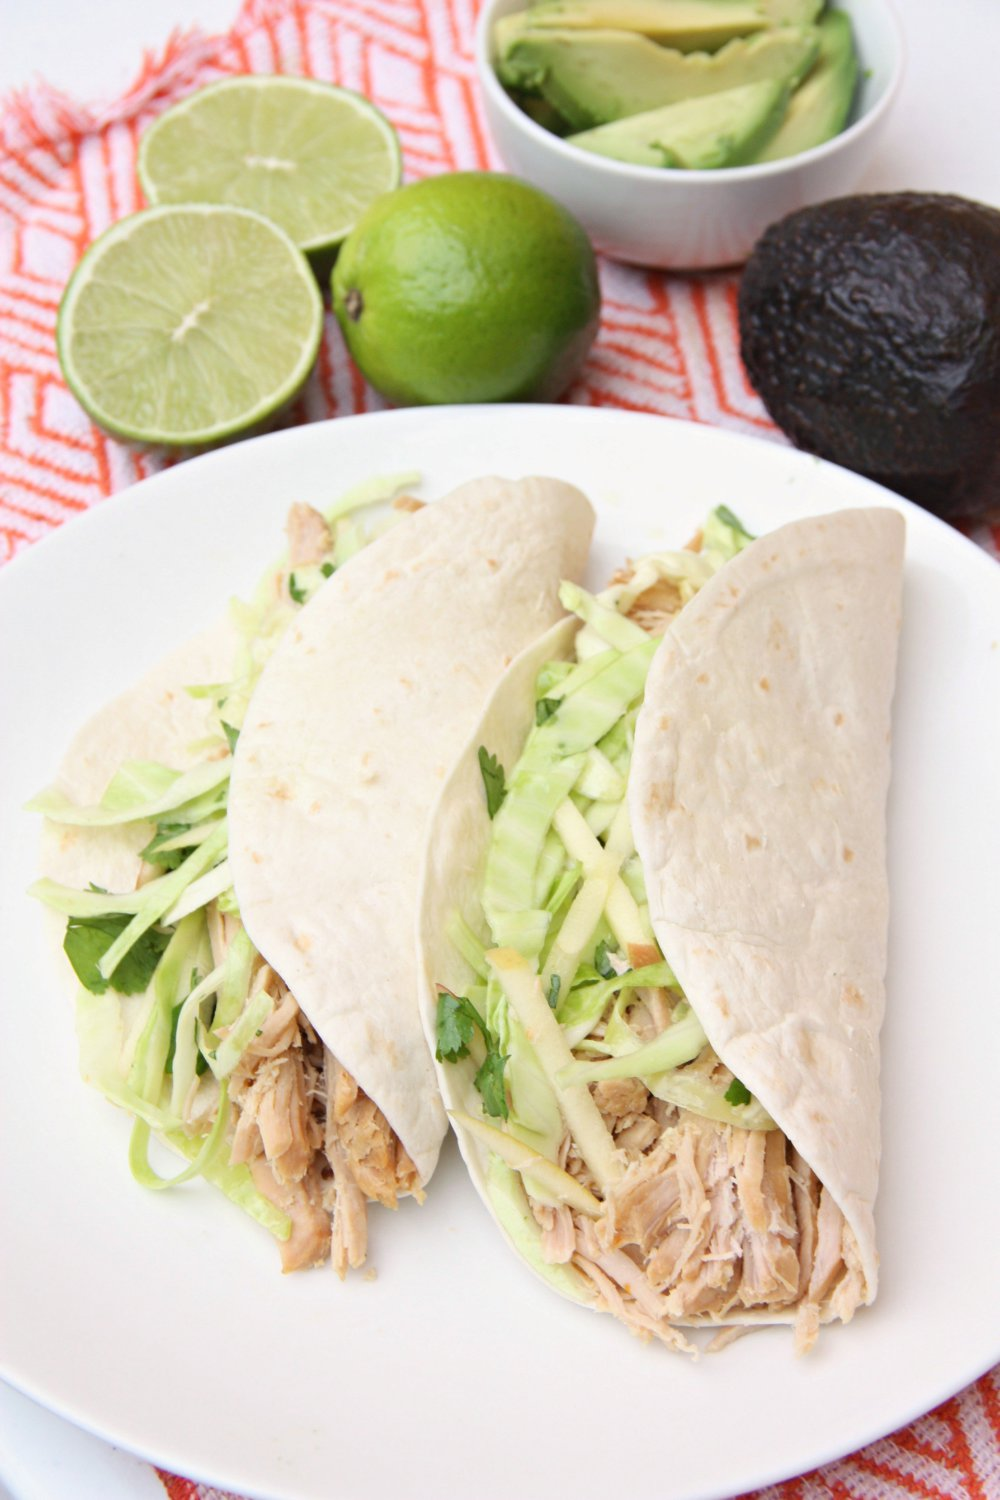 Citrus Pork Tacos with Apple Cabbage slaw